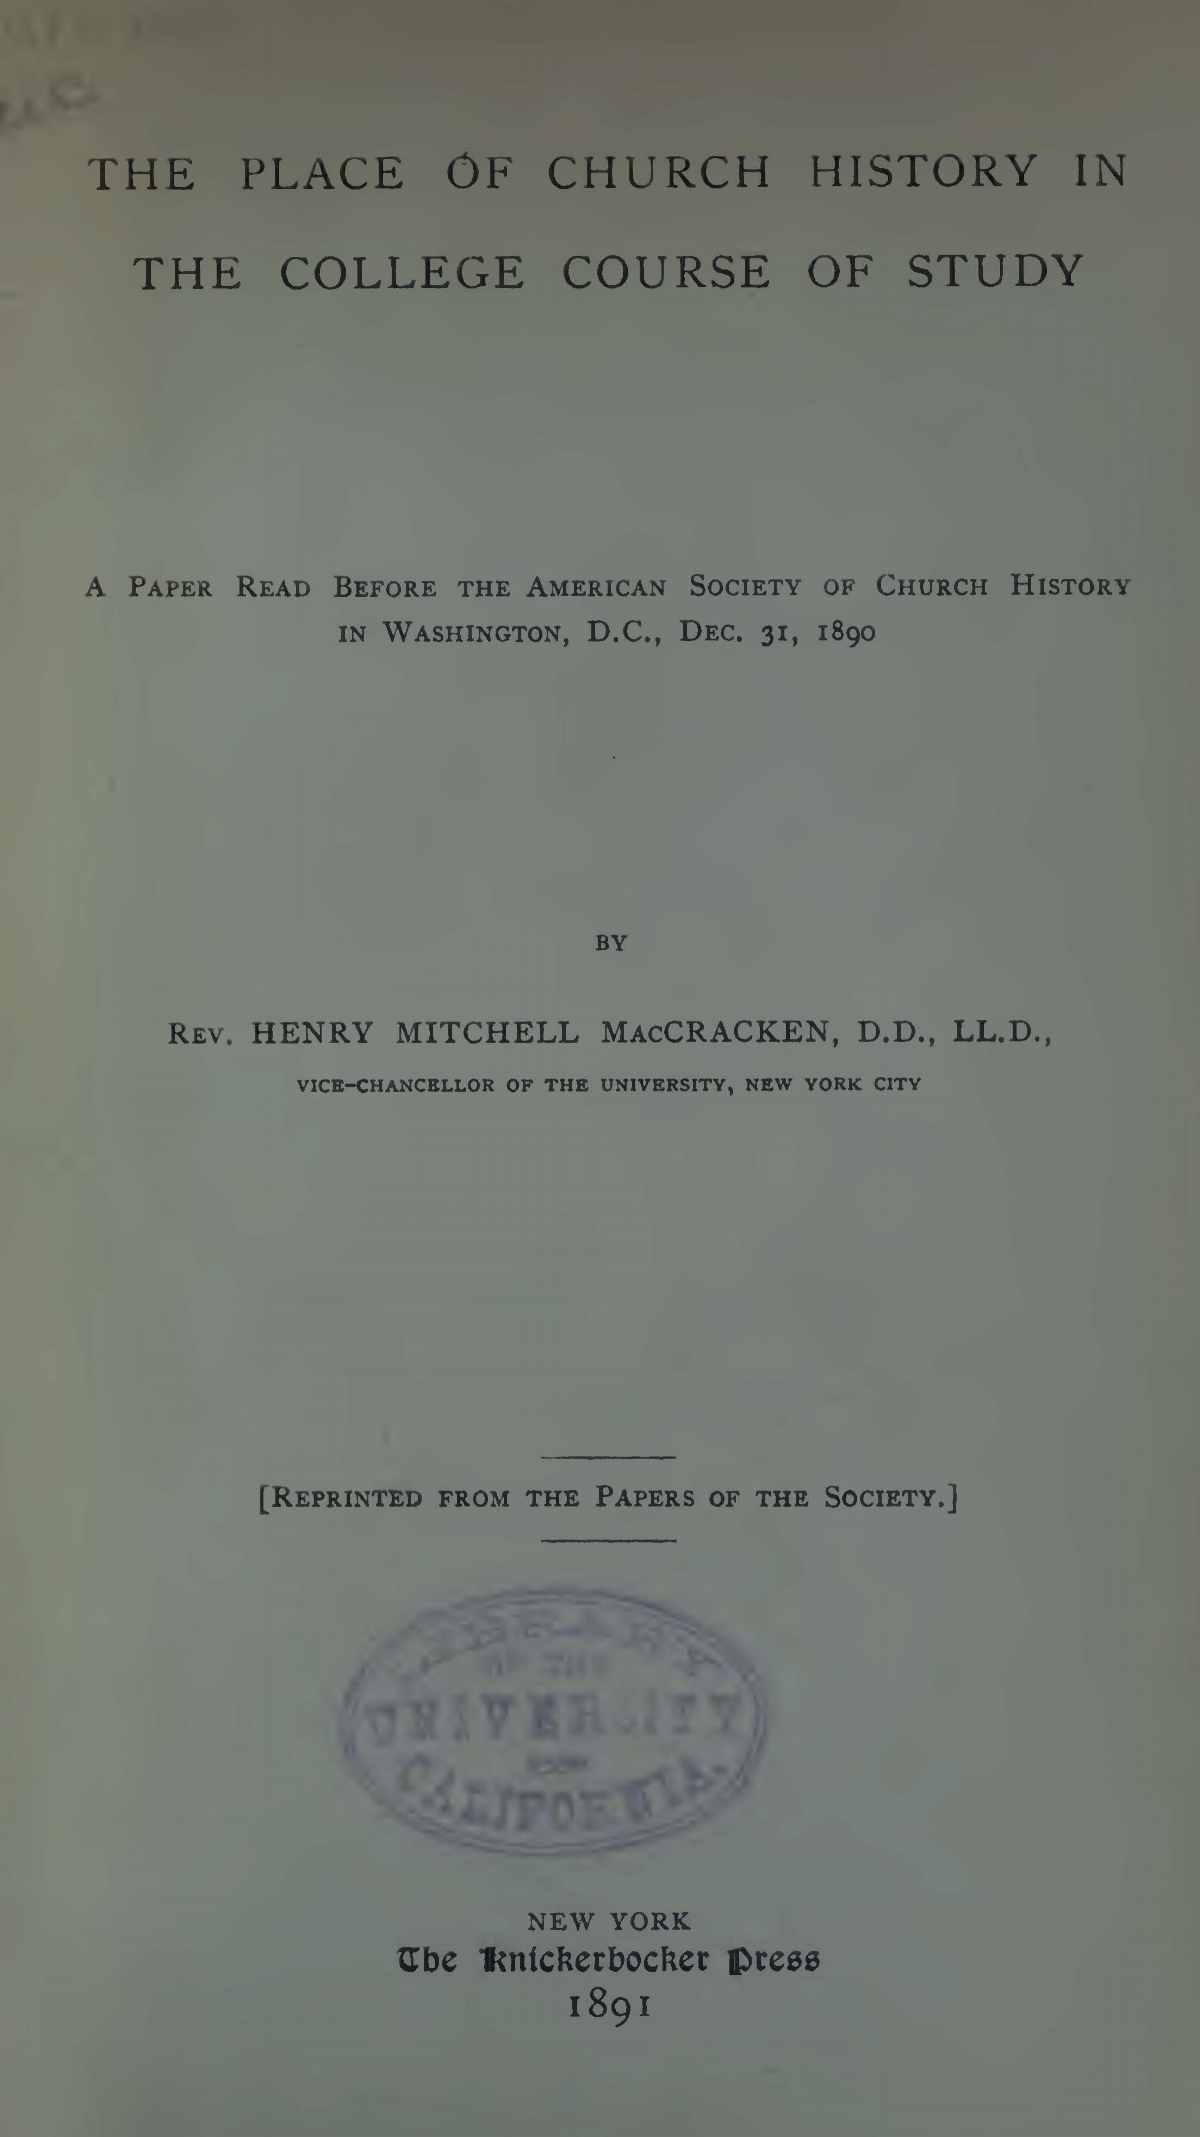 MacCracken, Henry Mitchell, The Place of Church History in the College Course of Study Title Page.jpg